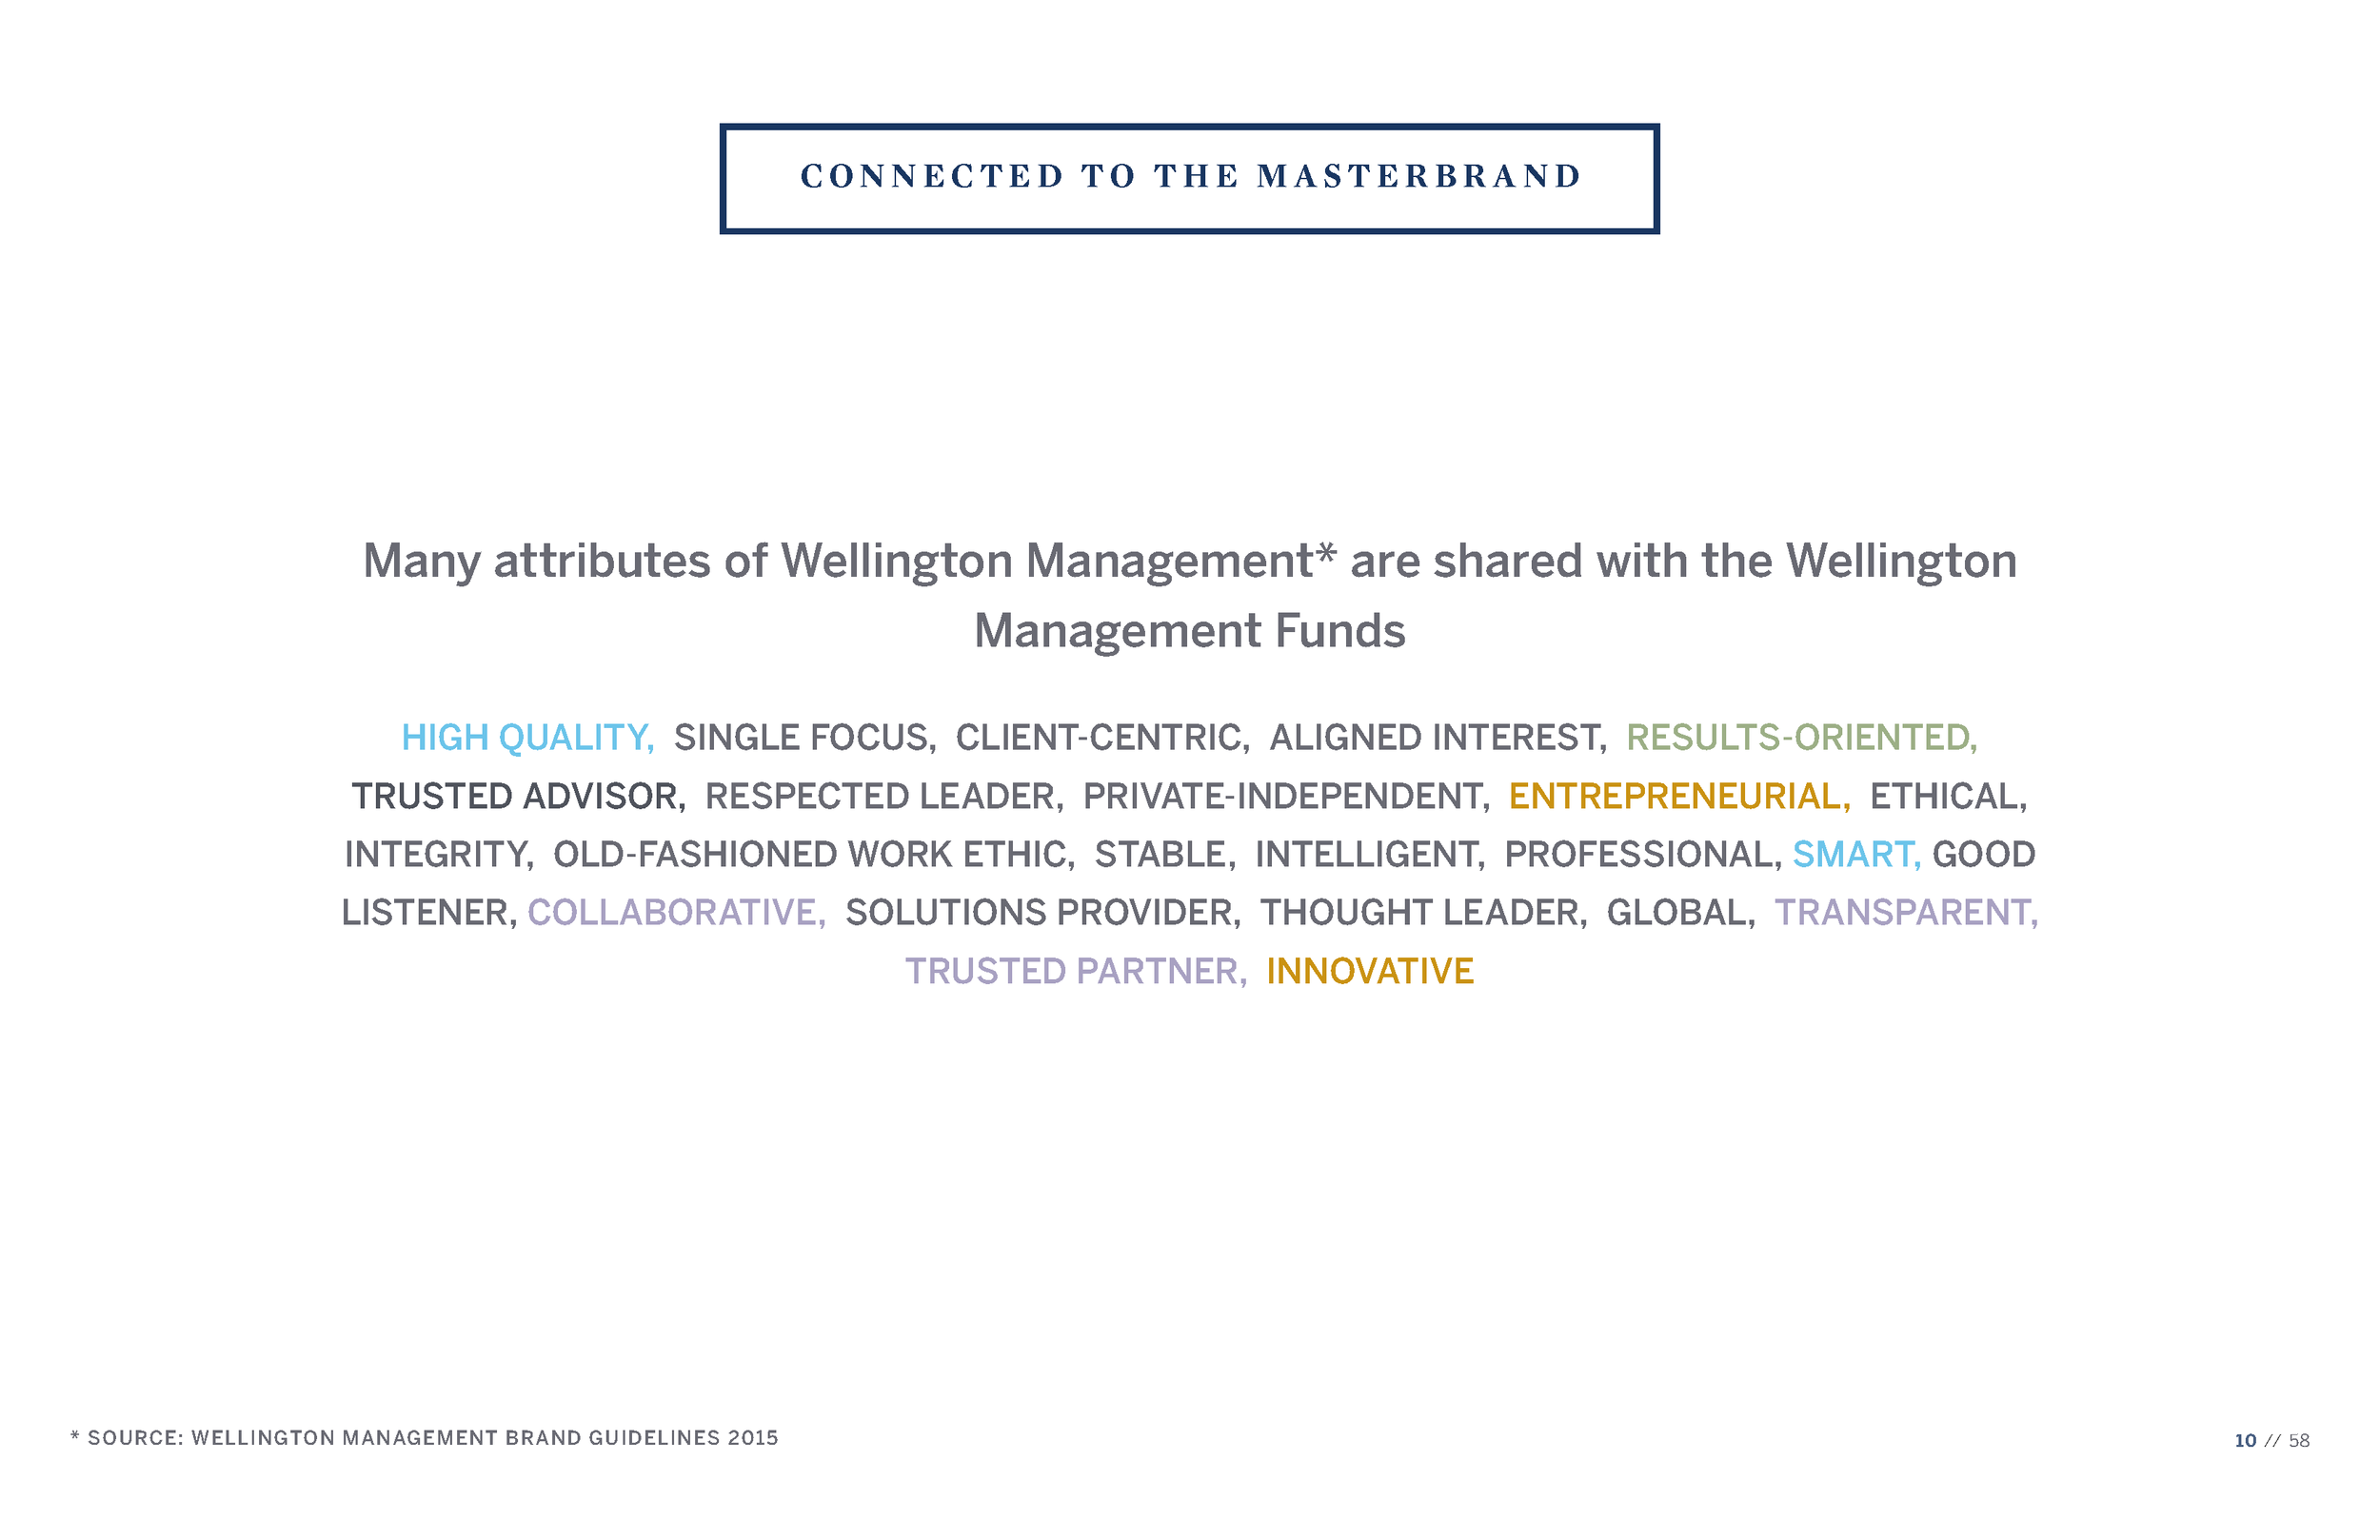 Wellington_11302015_v3_Page_10.png